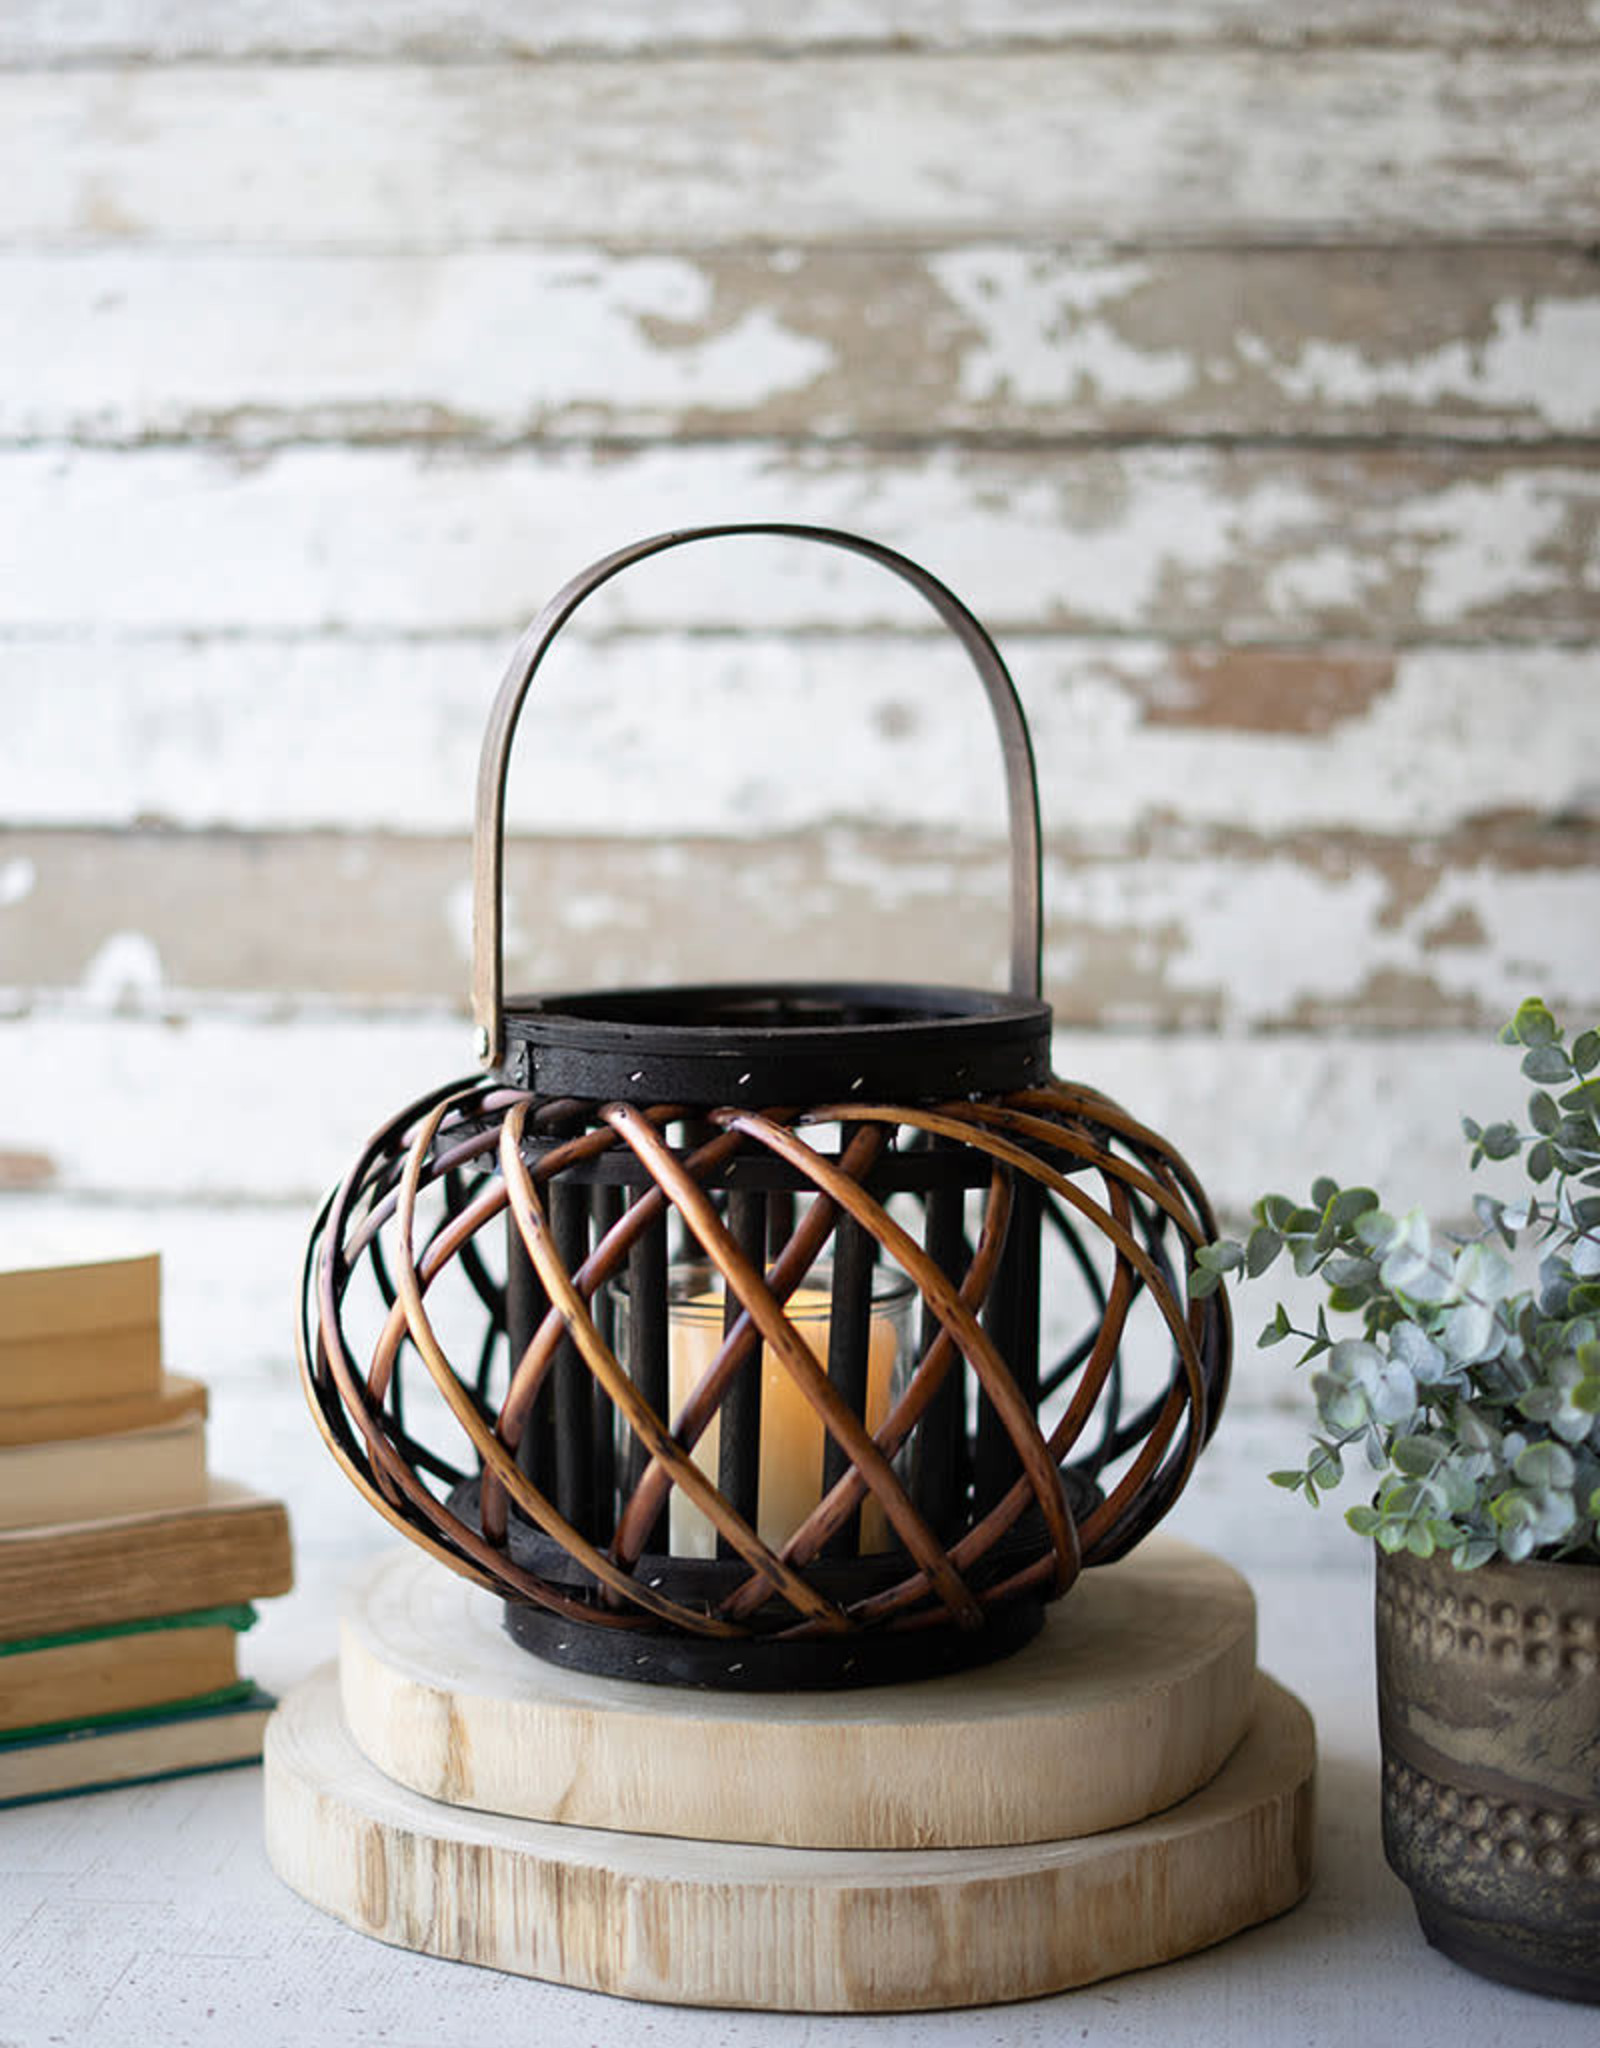 Kalalou Small Low Round Brown Willow Lantern with Wooden Handle